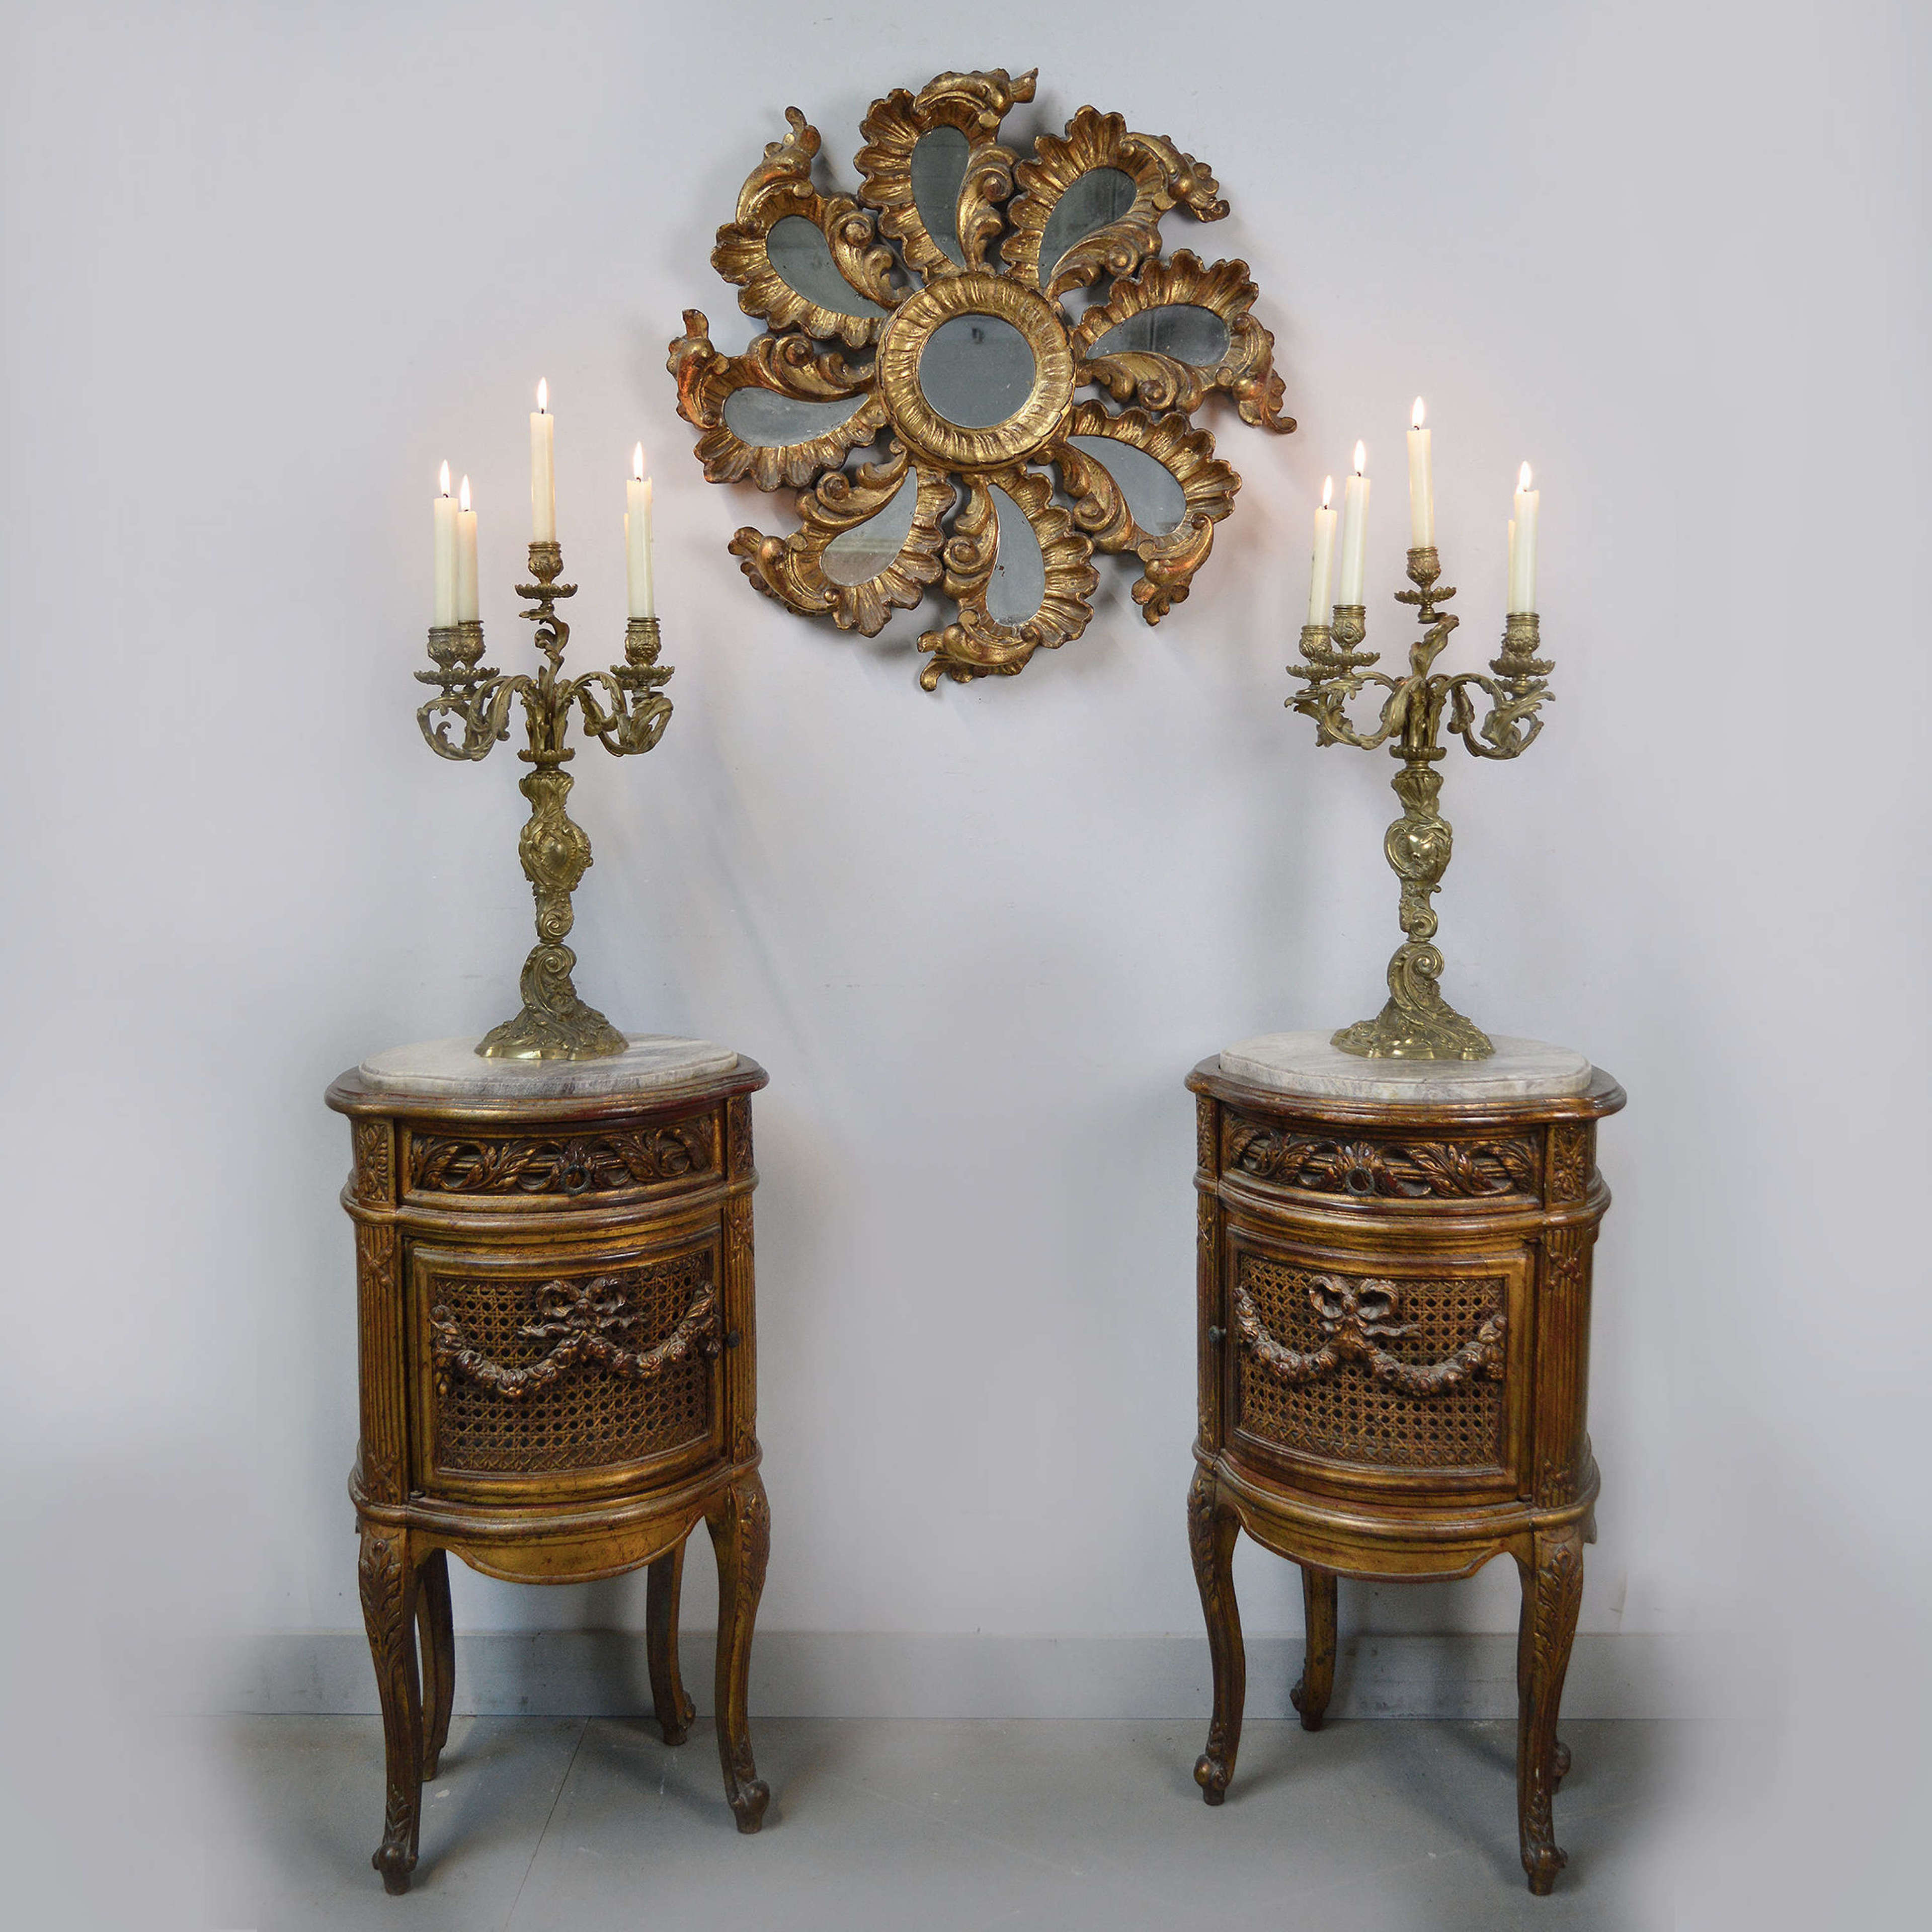 Pair of Louis XVI style giltwood bedside cabinets